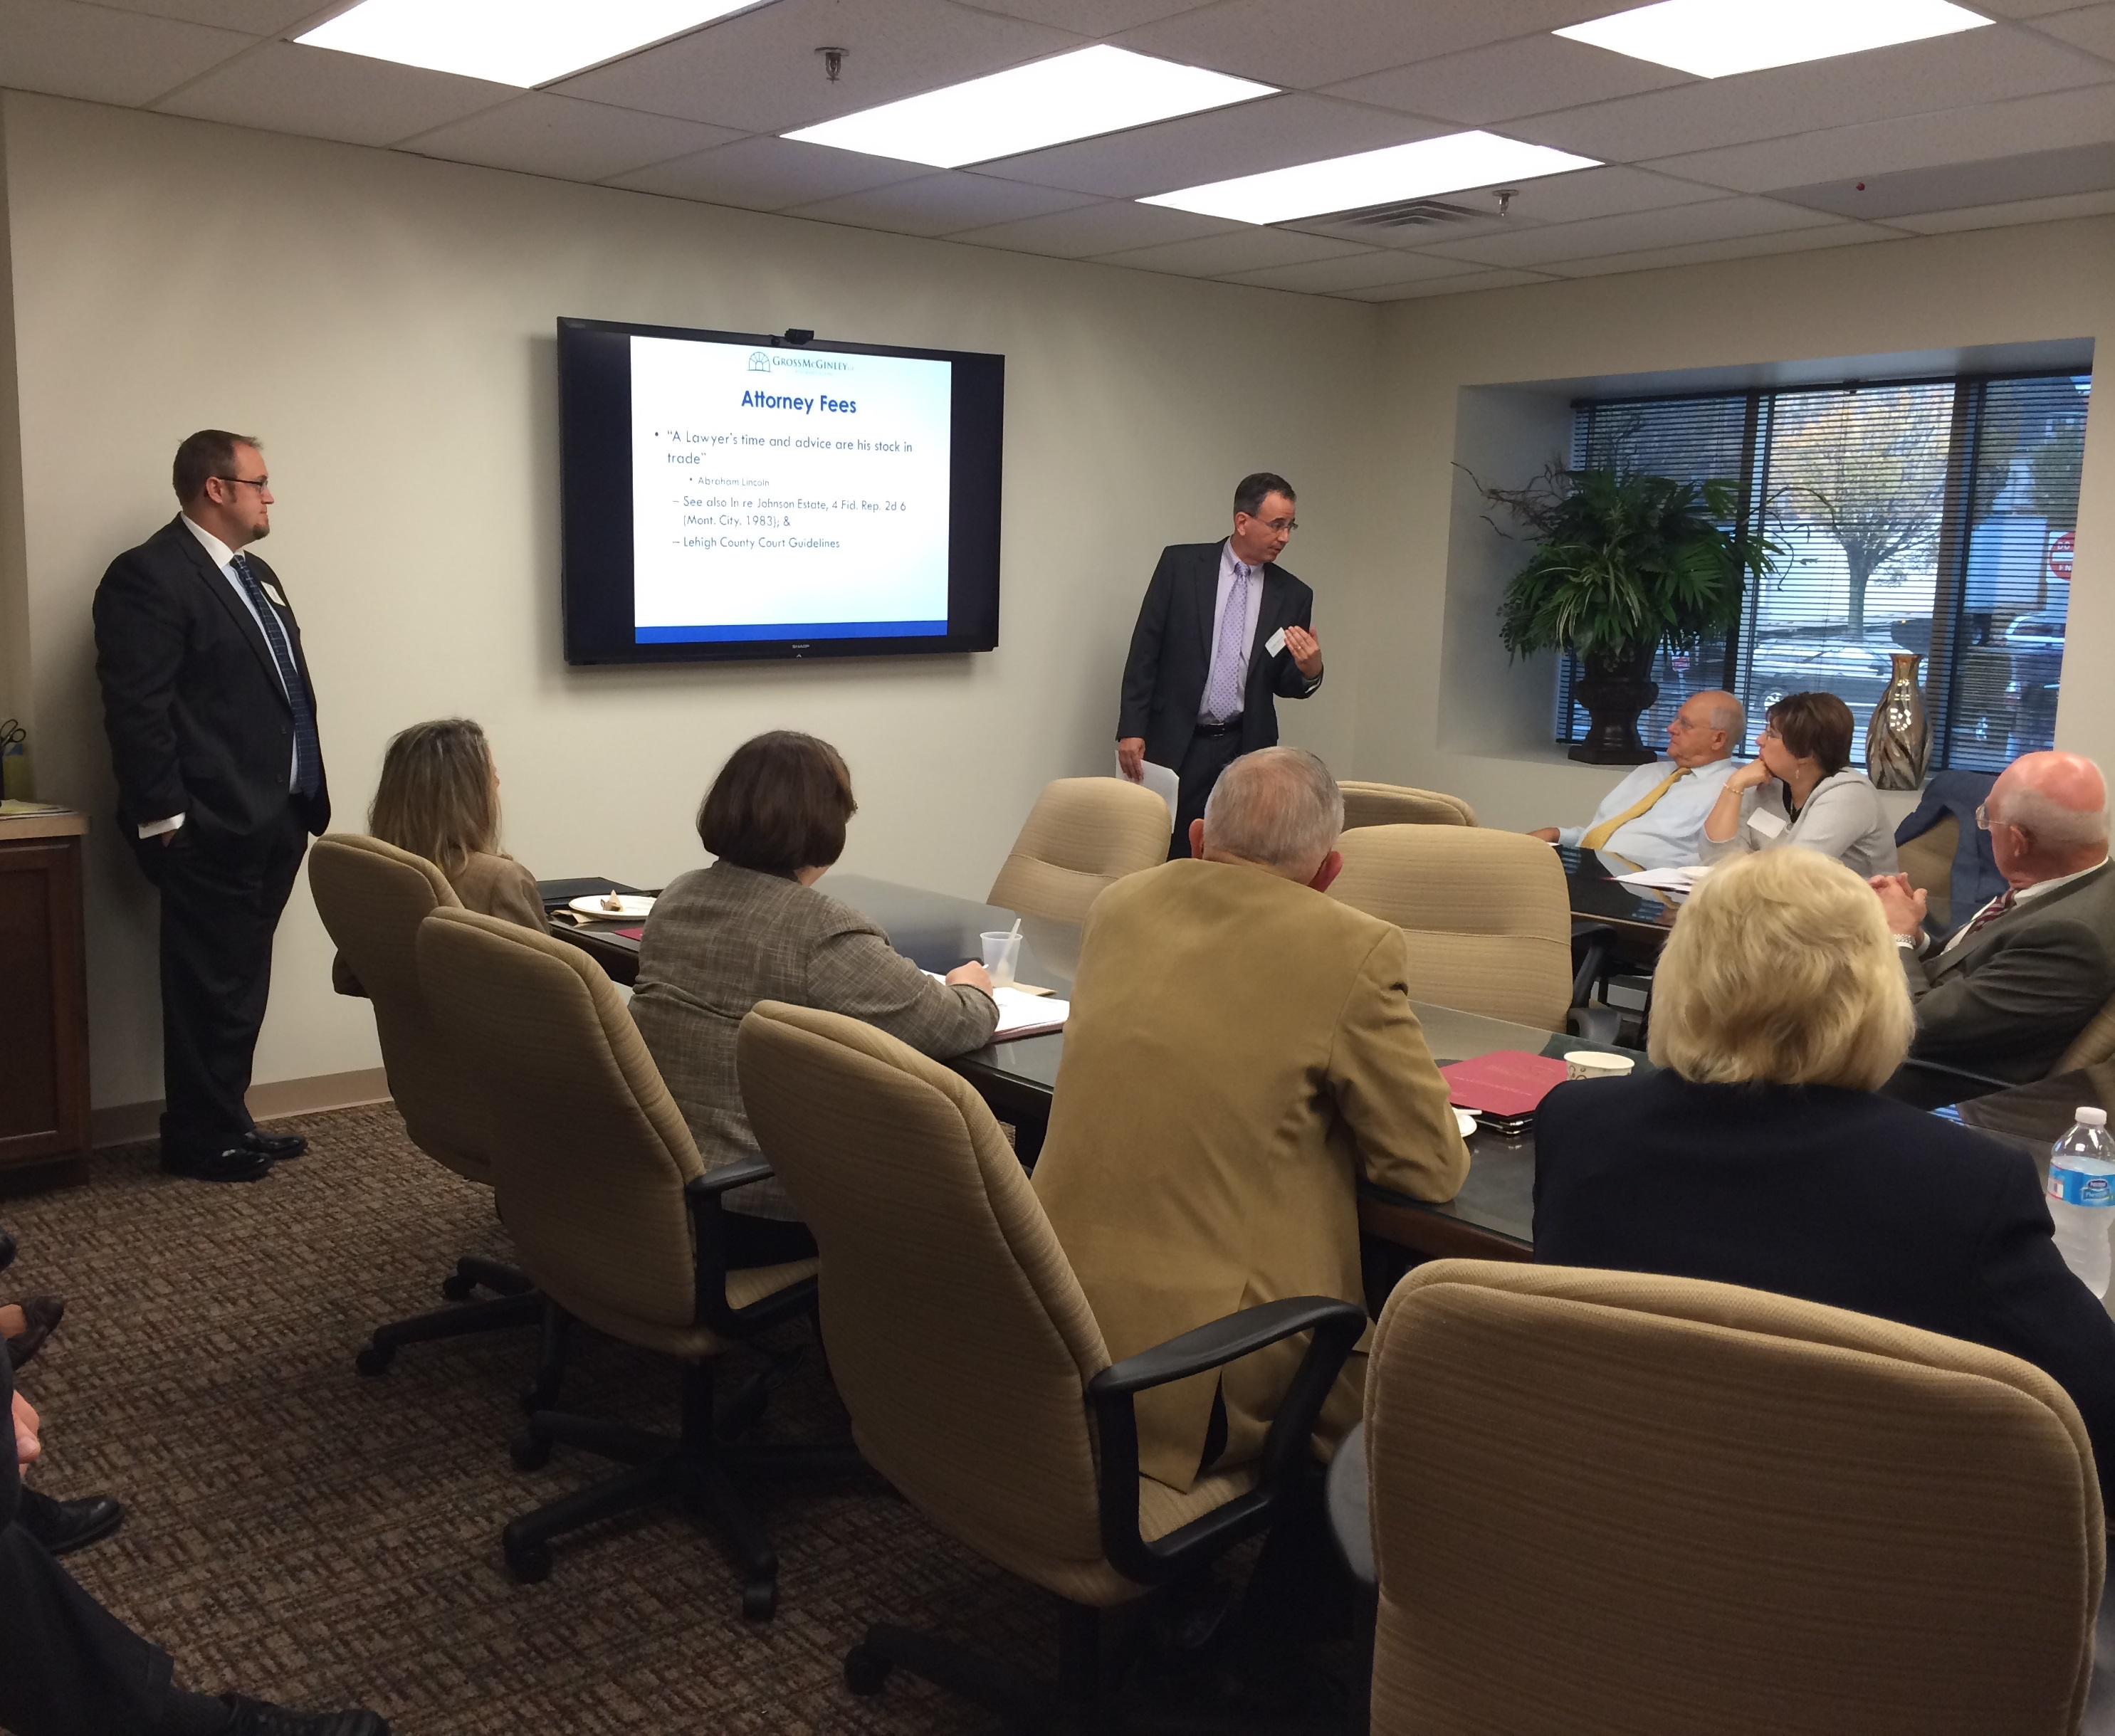 Gross McGinley's Wills, Trusts & Estates Group Presents TOD Accounts Seminar at Allentown Office